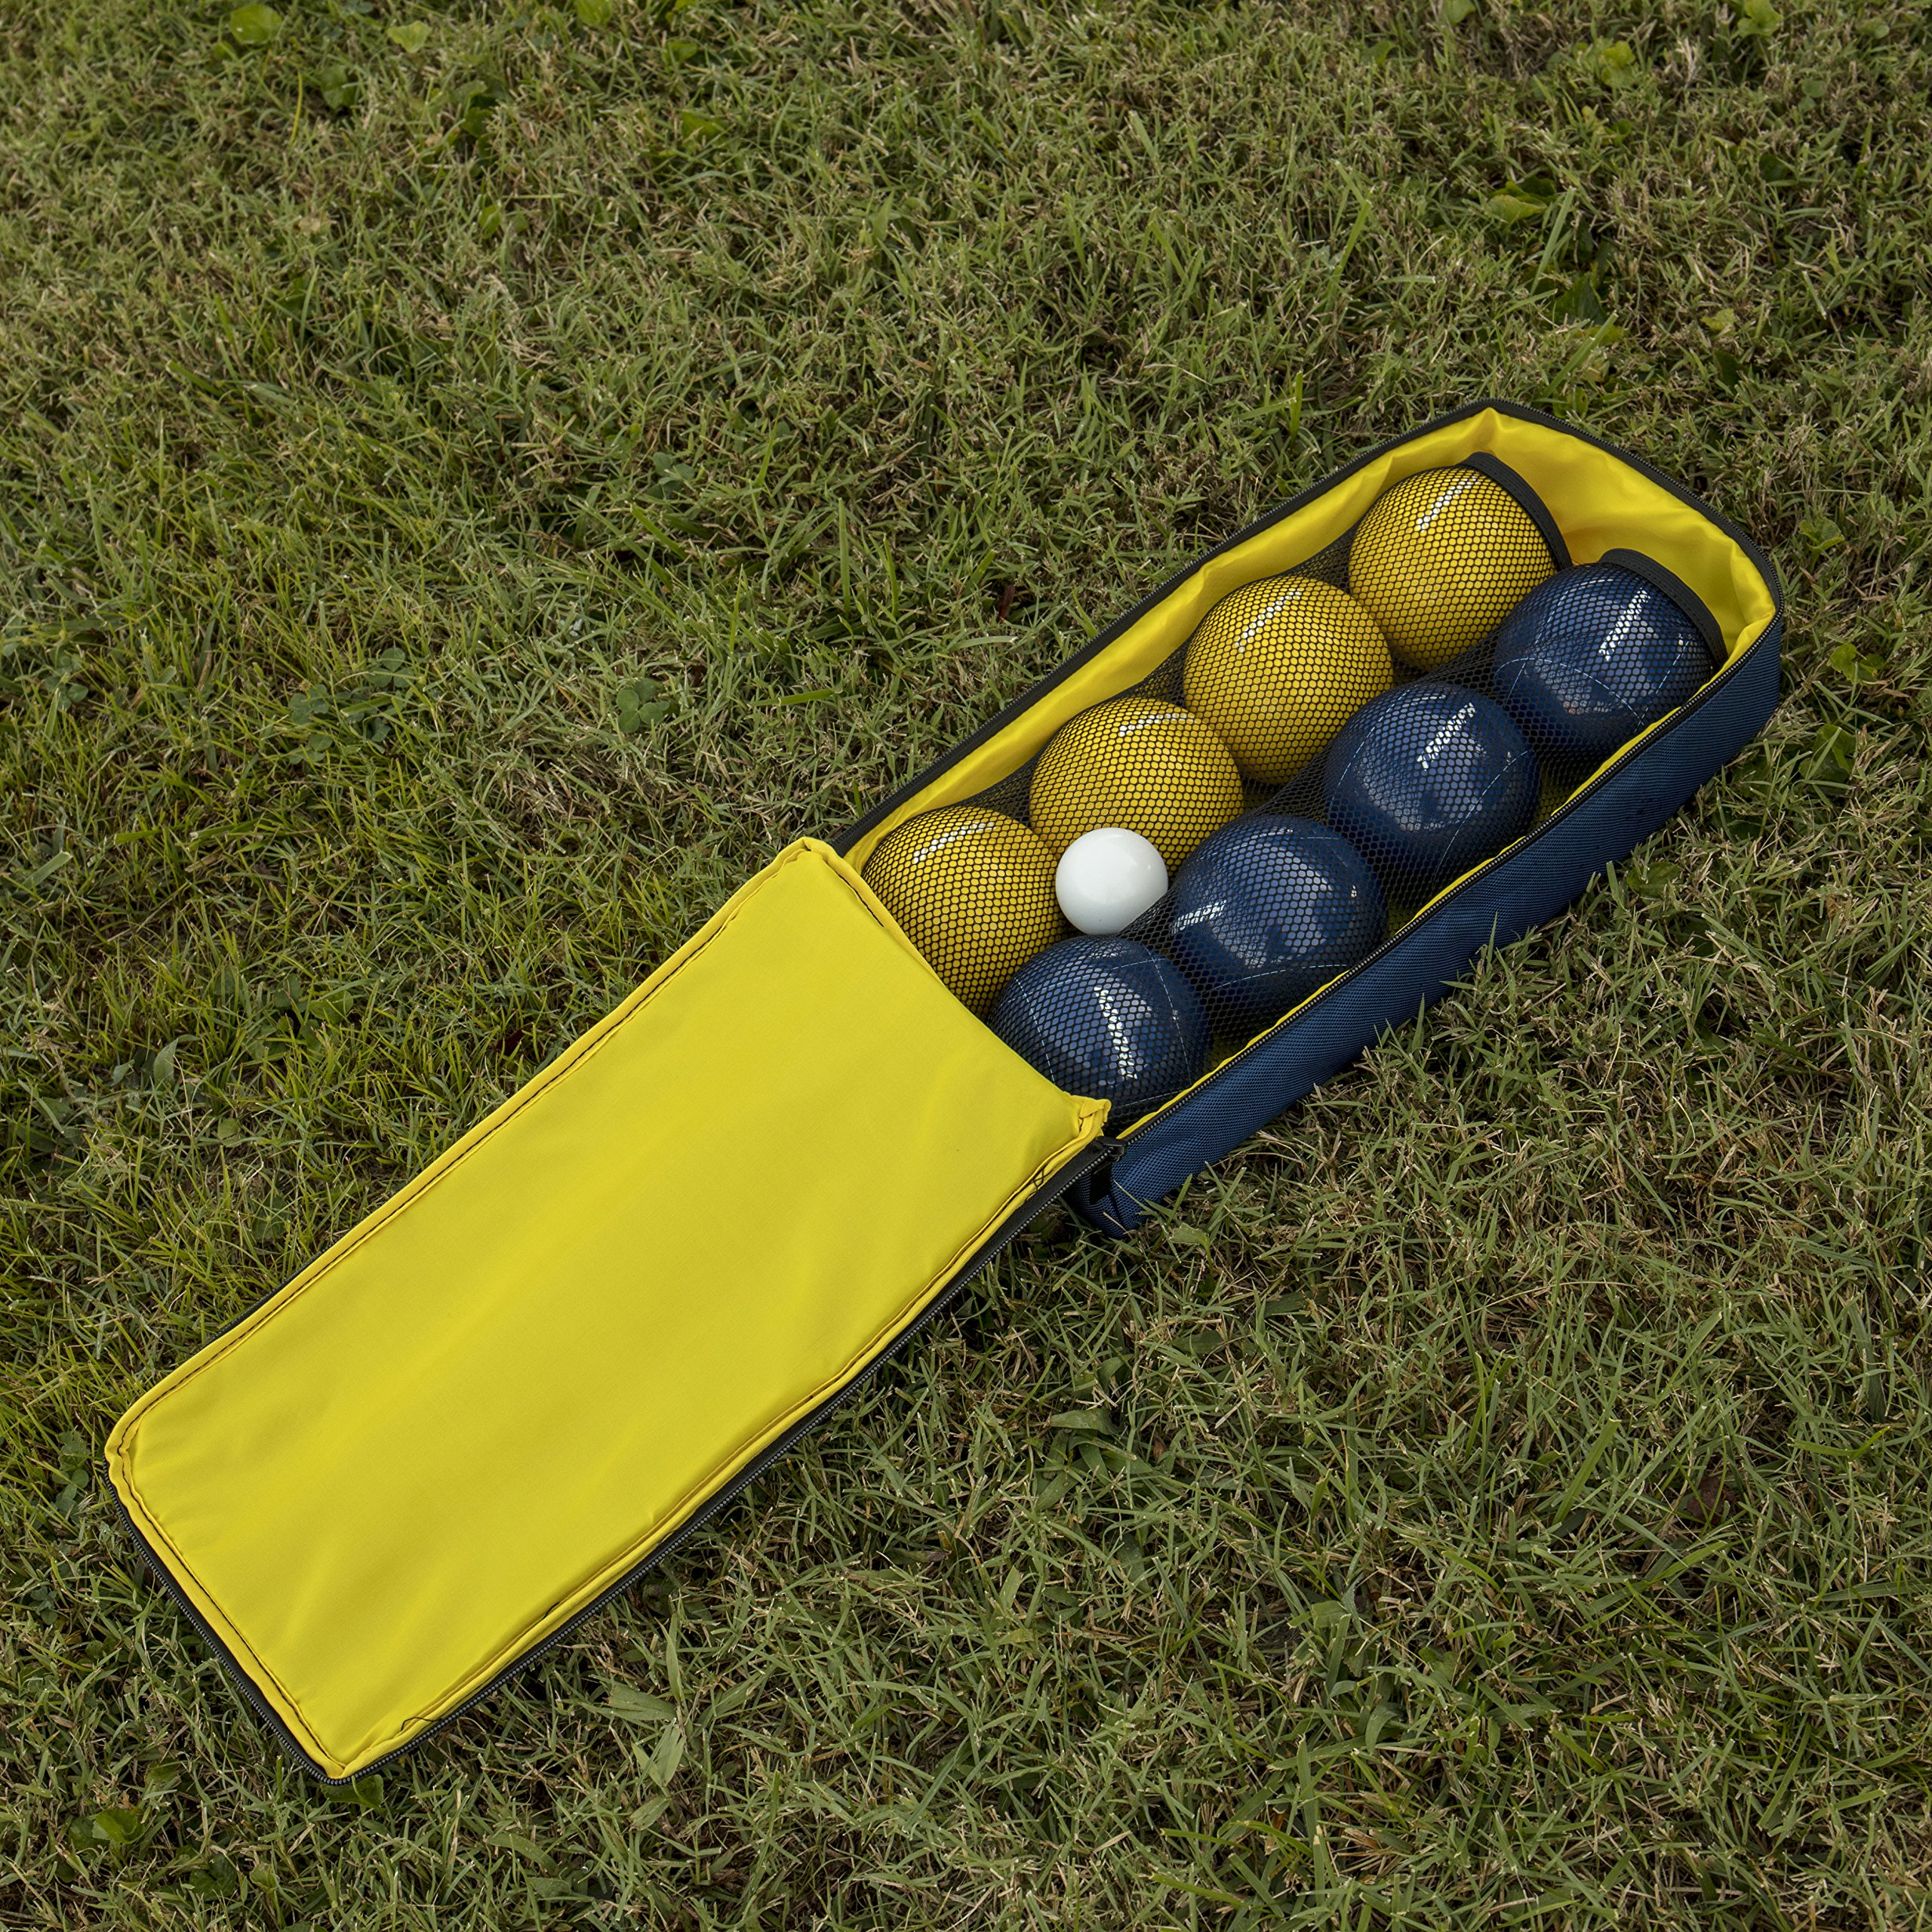 Triumph All Pro 100mm Bocce Set Includes Eight Bocce Balls, One 50mm Jack, and Carry Bag by Triumph Sports (Image #10)